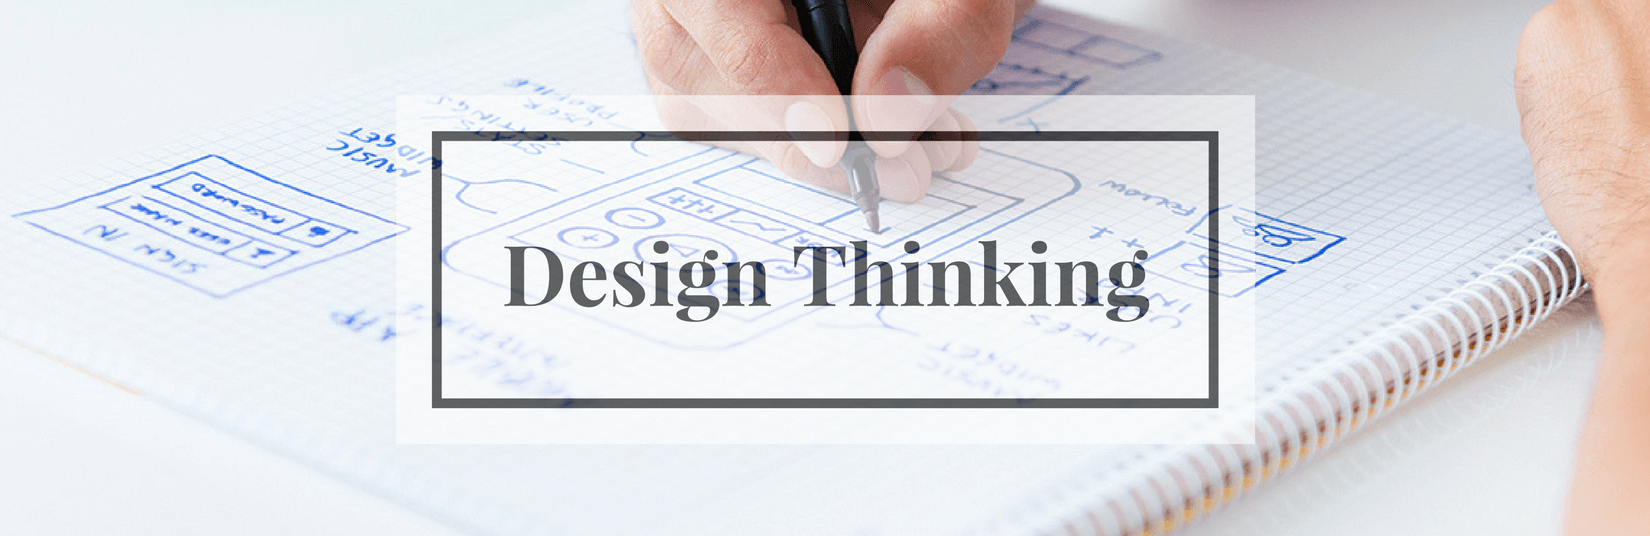 Elements of Design Thinking for Enterprise Mobile App Development